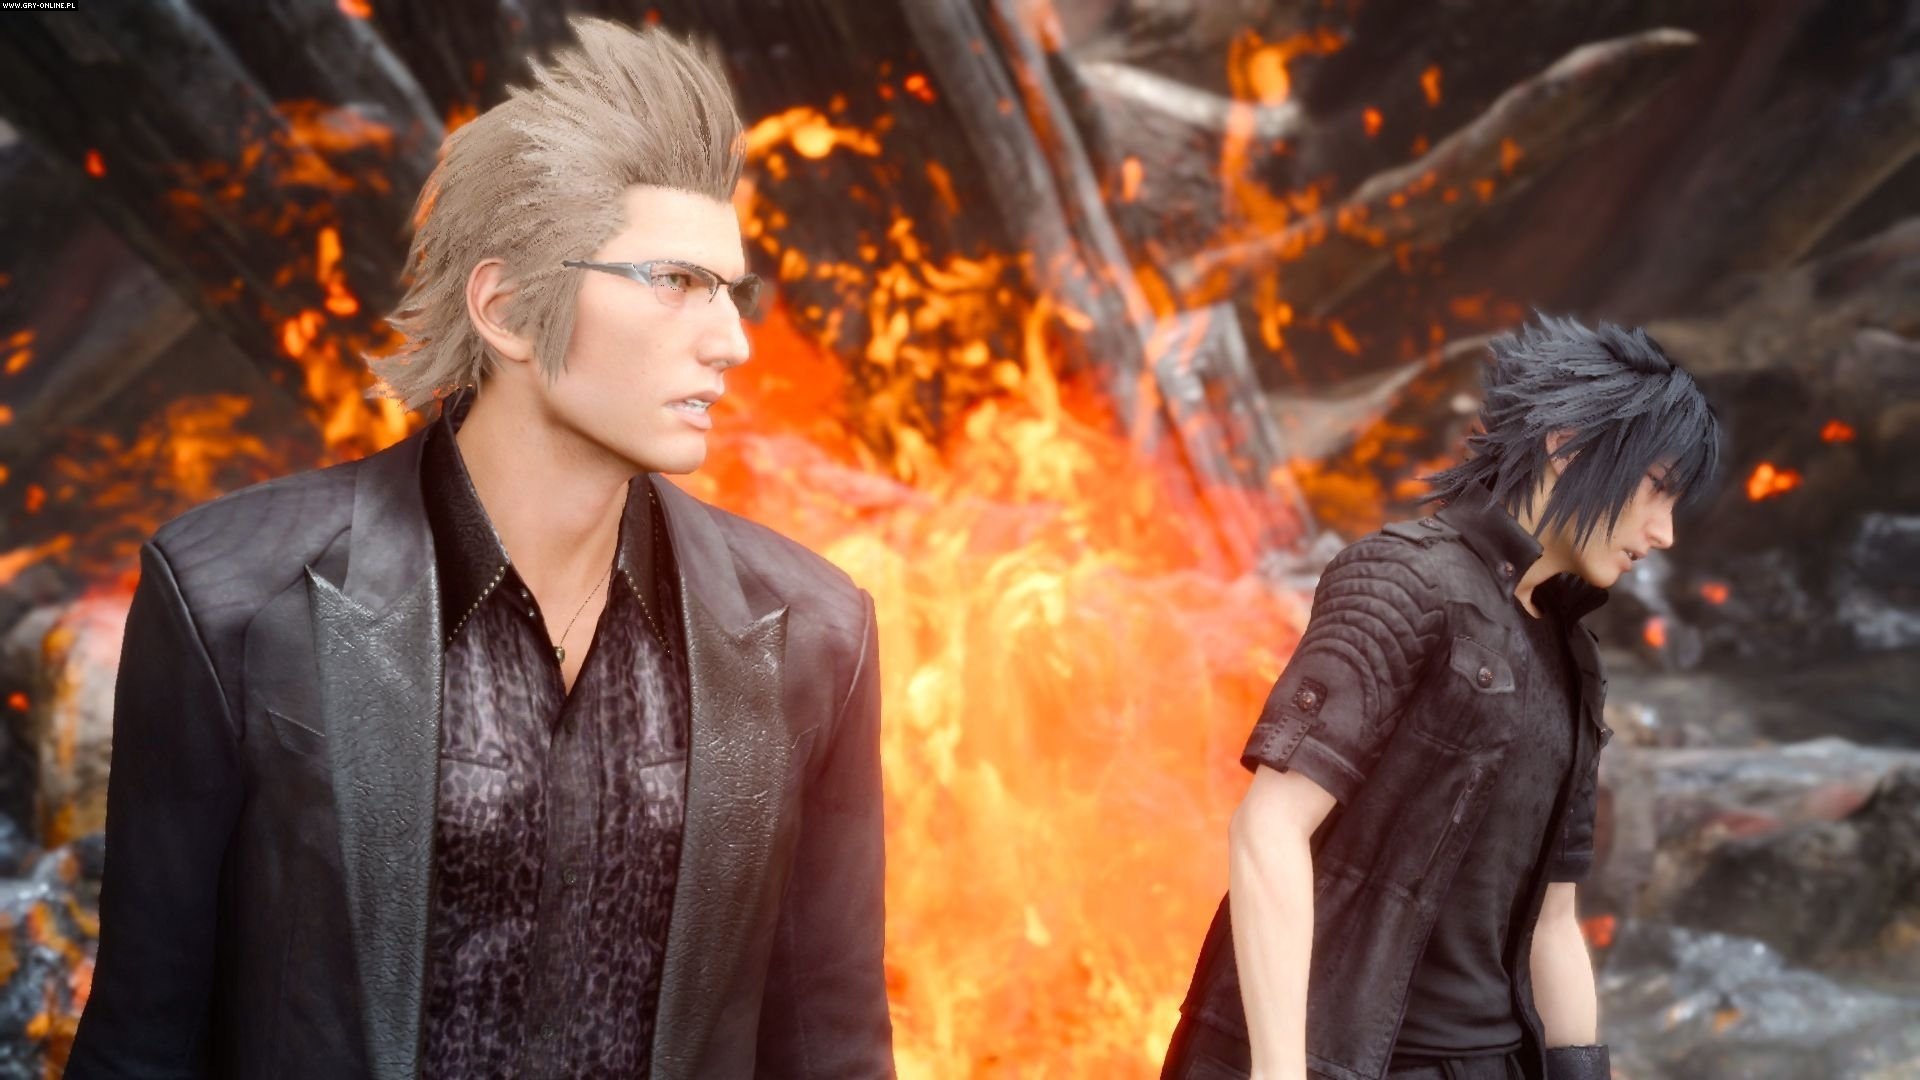 Final Fantasy XV PS4, XONE Gry Screen 134/393, Square-Enix / Eidos